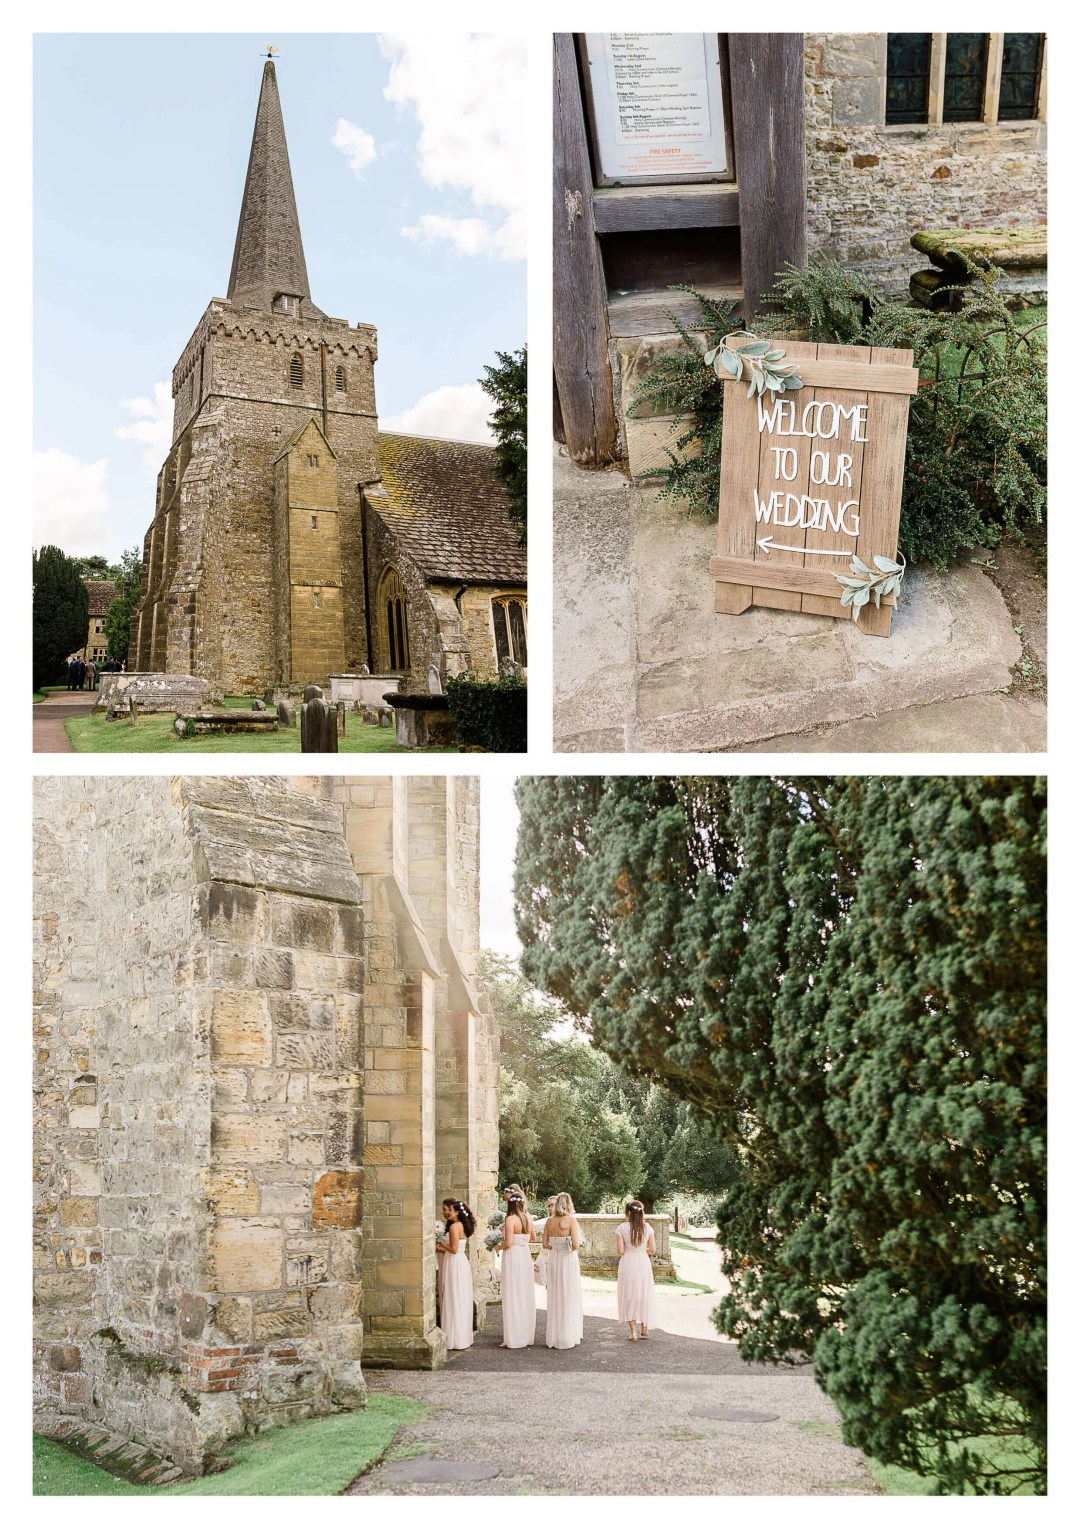 Holy Trinity Church wedding venue | Cuckfield wedding photographer-